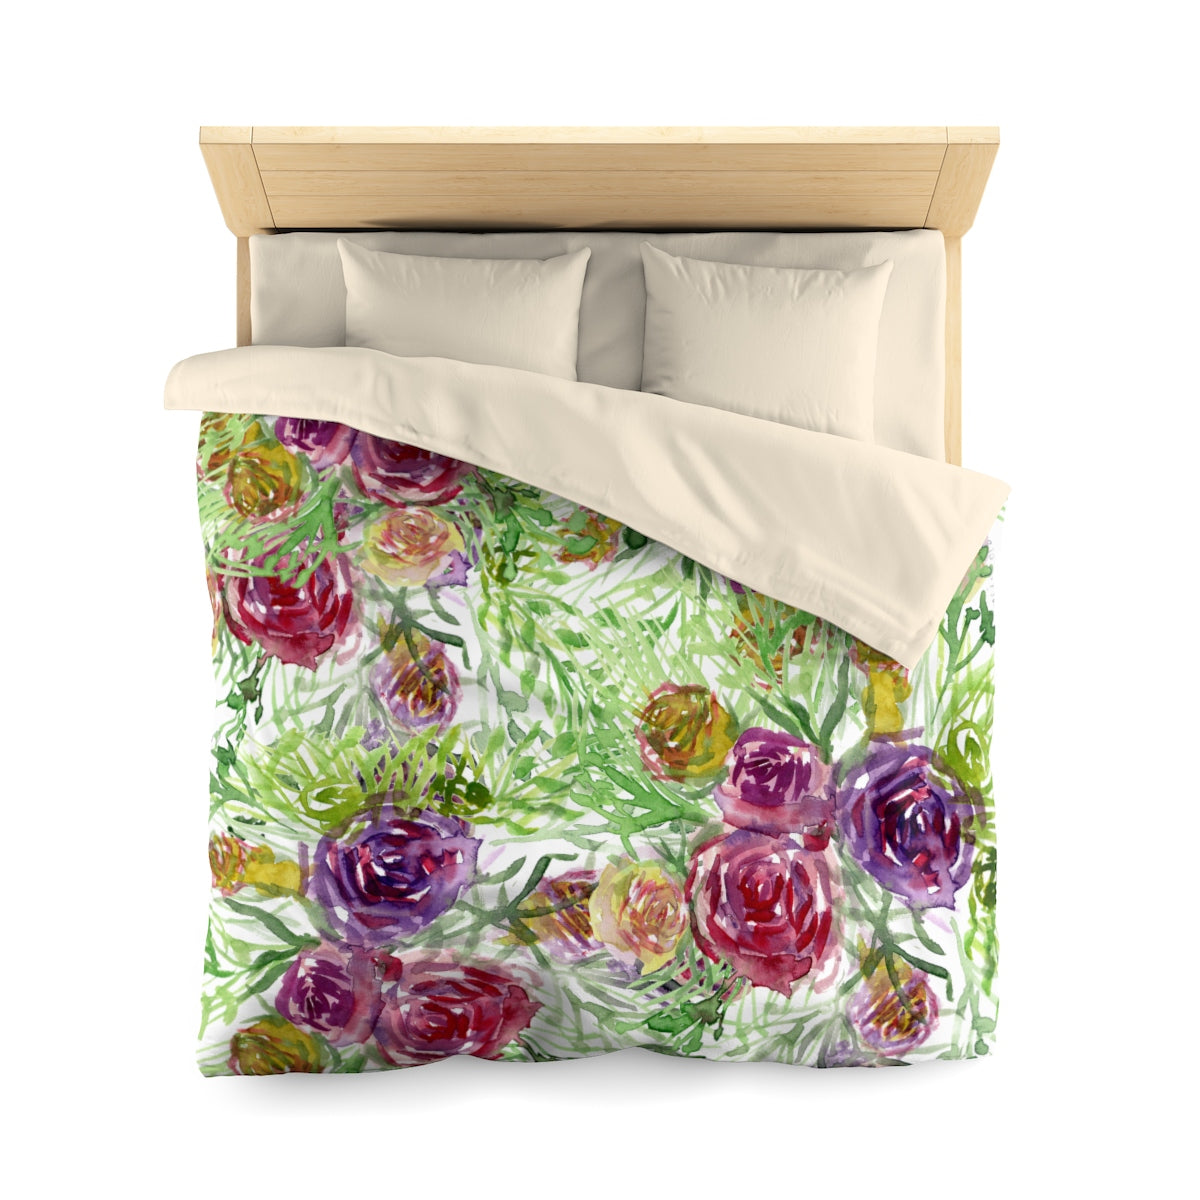 Purple Garden Floral Rose Soft Polyester Microfiber Duvet Cover-Made in USA-Duvet Cover-Queen-Cream-Heidi Kimura Art LLC